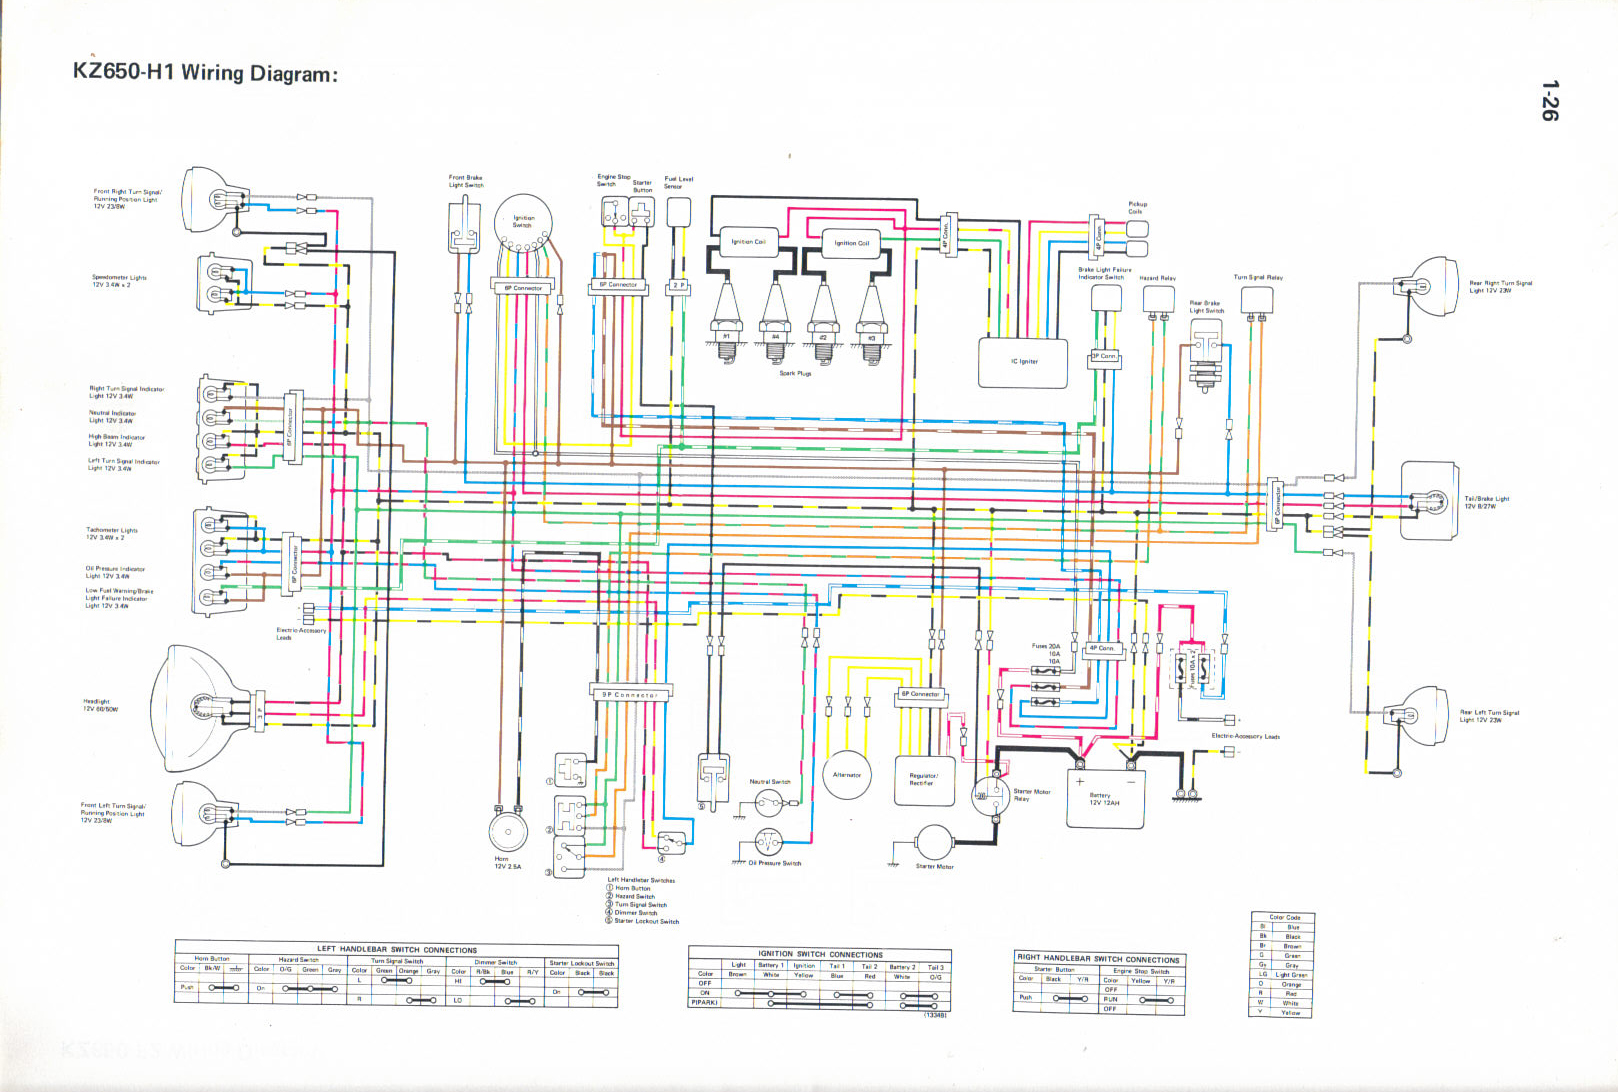 KZ650 H1 kz650 info wiring diagrams 1980 kawasaki 440 ltd wiring diagram at bayanpartner.co